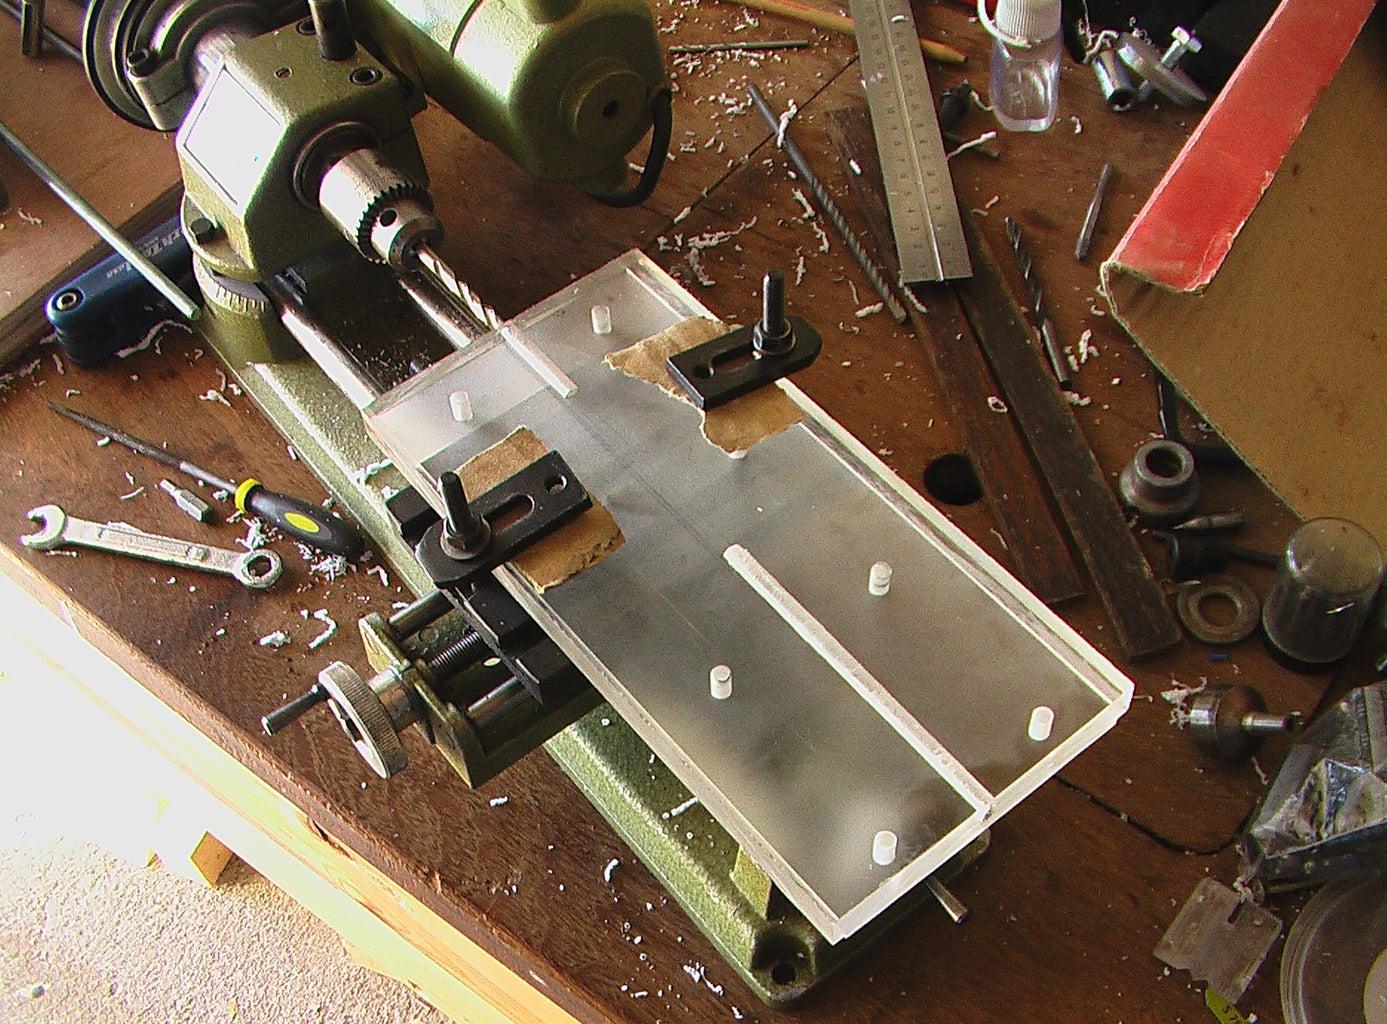 The Tailstock (part 1 - the Sliding Base)